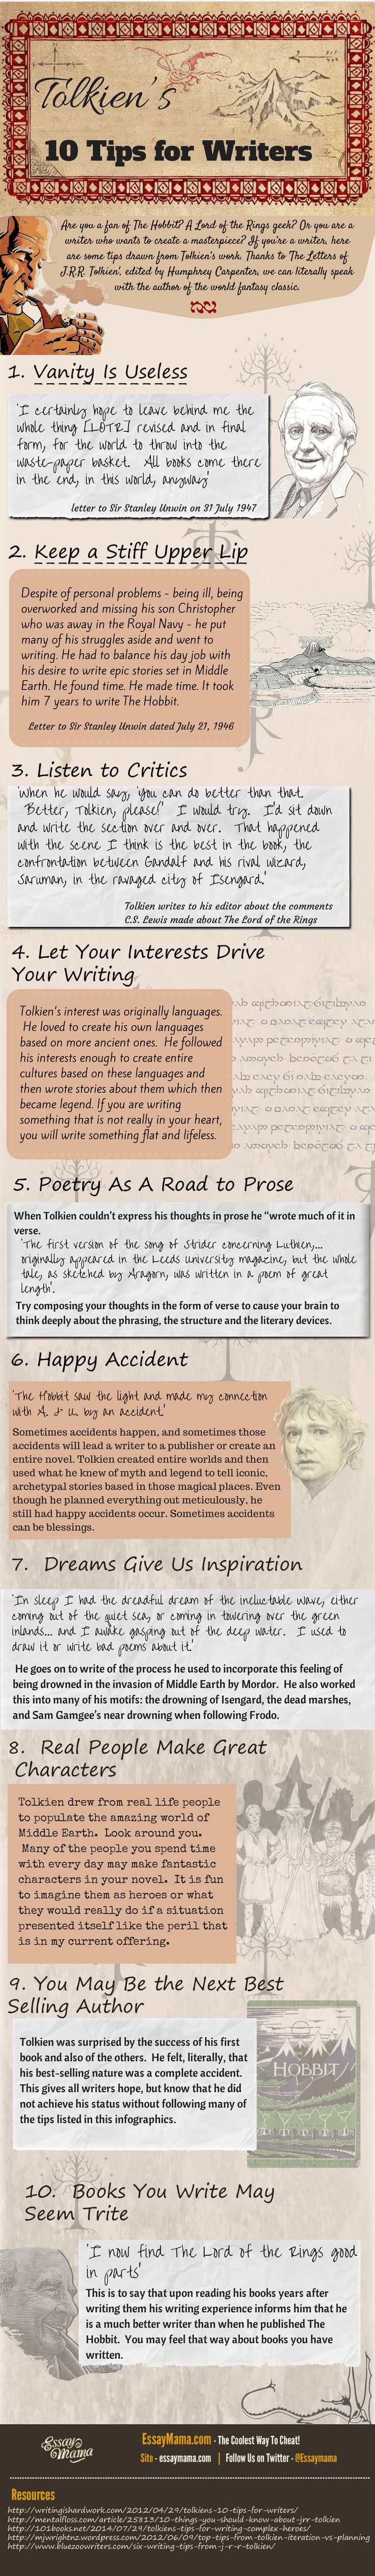 Tolkien's 10 Tips for Writers infographic. This would be a fun discussion starter and writing prompt!